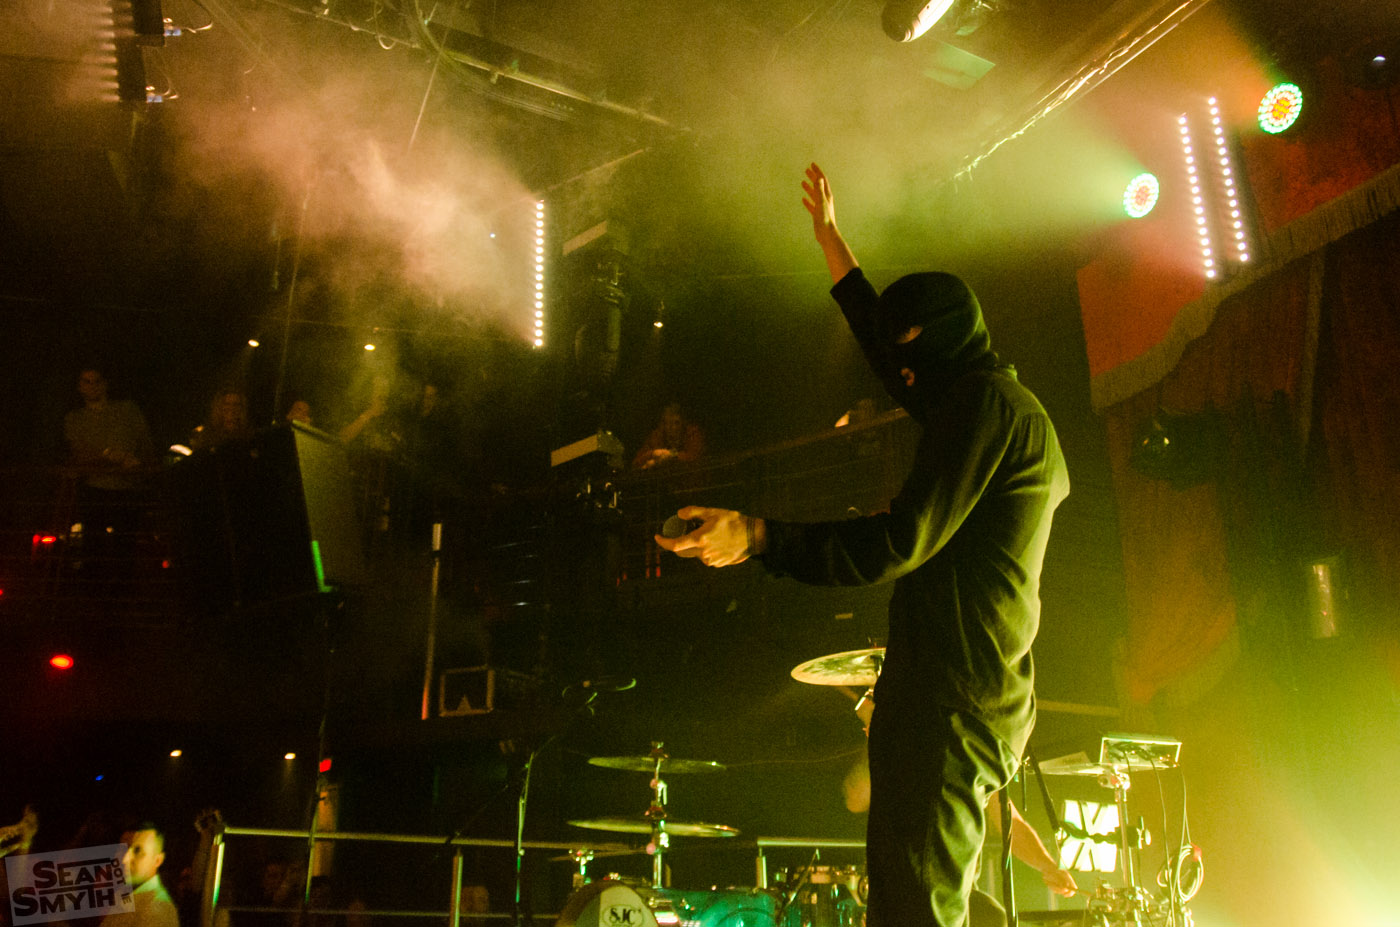 twenty-one-pilots-at-the-academy-by-sean-smyth-16-11-14-9-of-41_15804937161_o